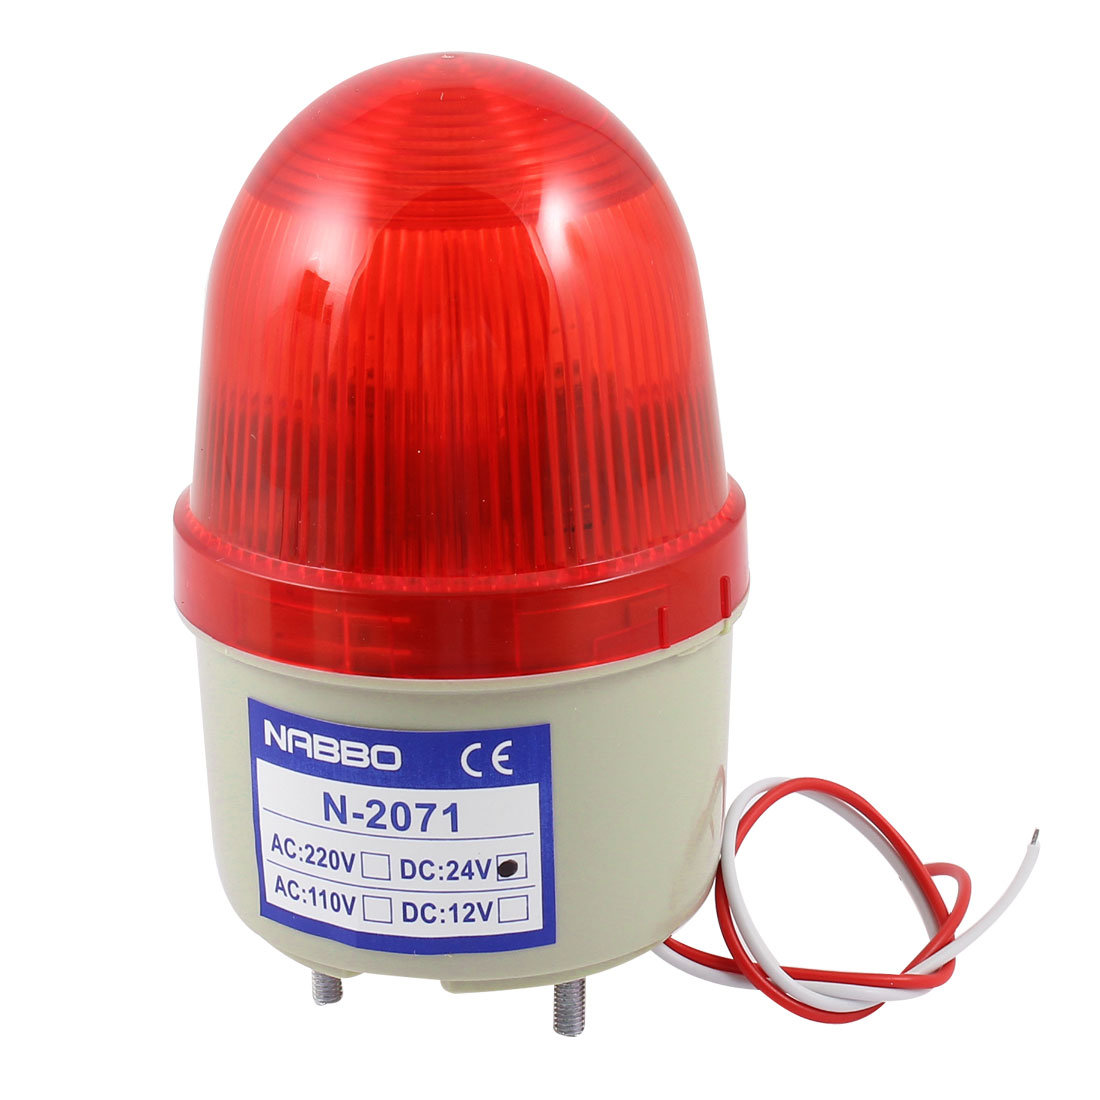 DC 24V Industrial Flash Strobe Light Emergency Warning Lamp Red N-2071